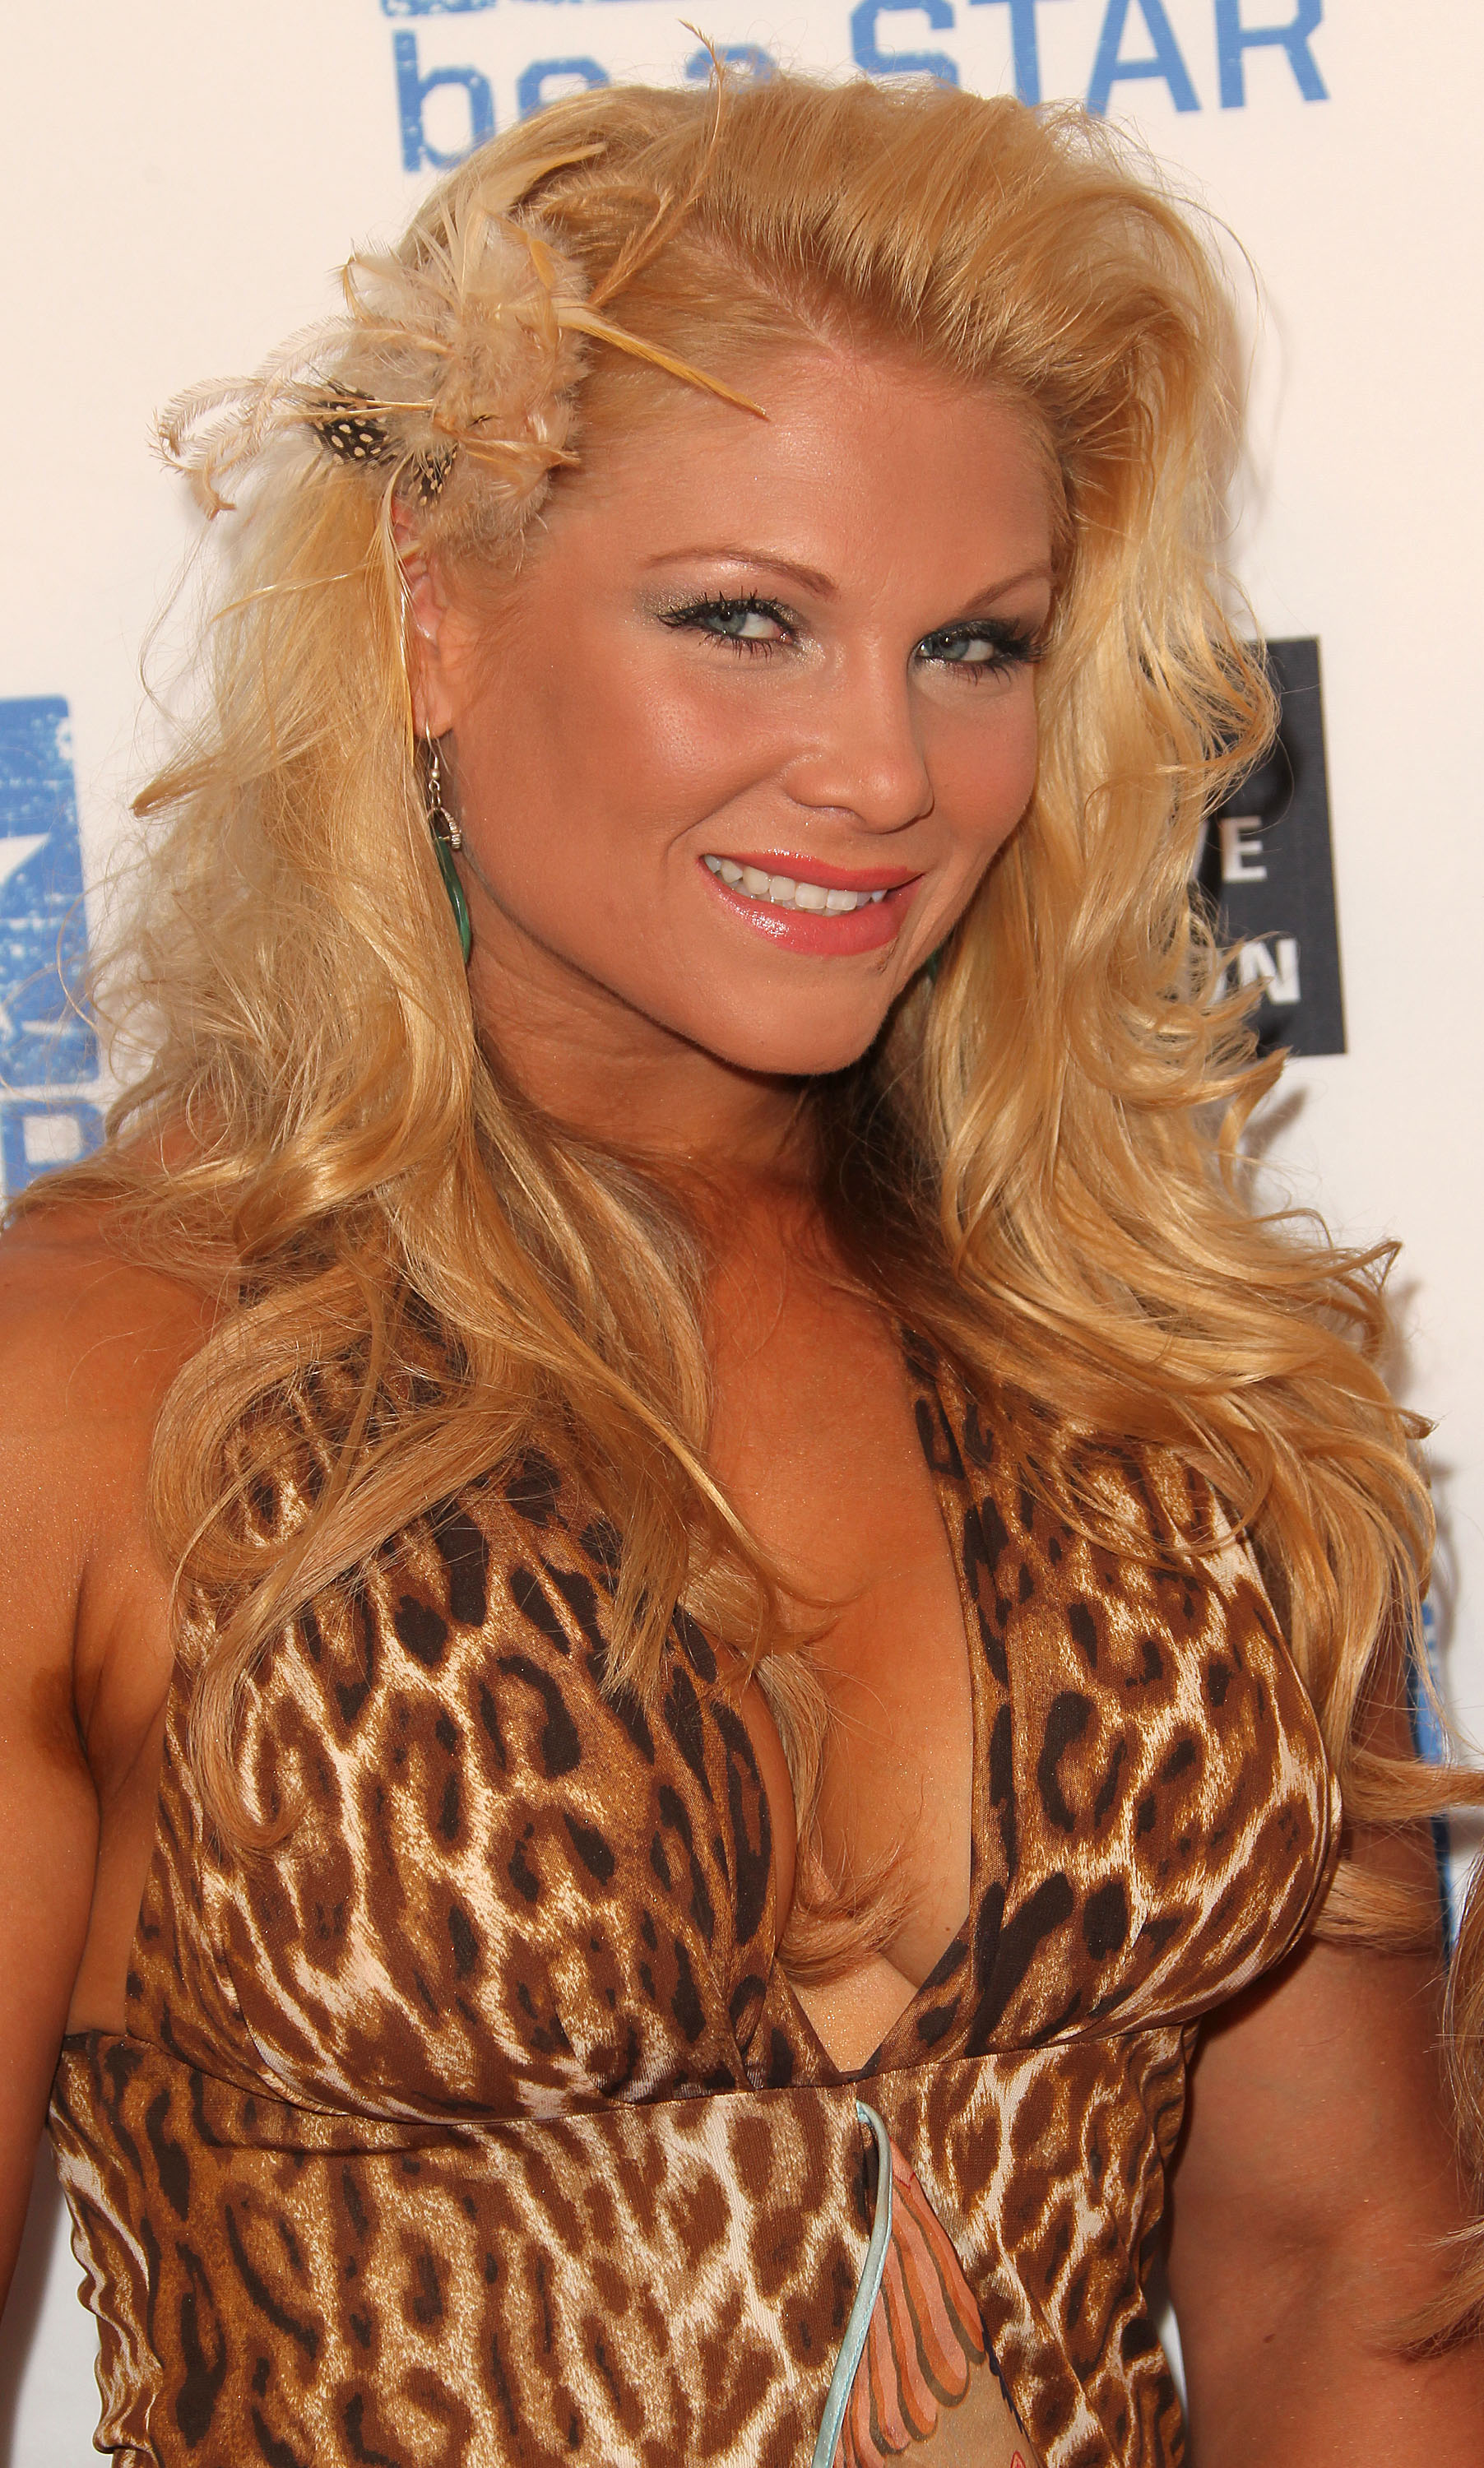 Beth Phoenix attends the WWE and The Creative Coalition's 'be a Star' SummerSlam Kickoff Party at The Andaz Hotel on August 11, 2011 in Los Angeles, California. (Getty Images)